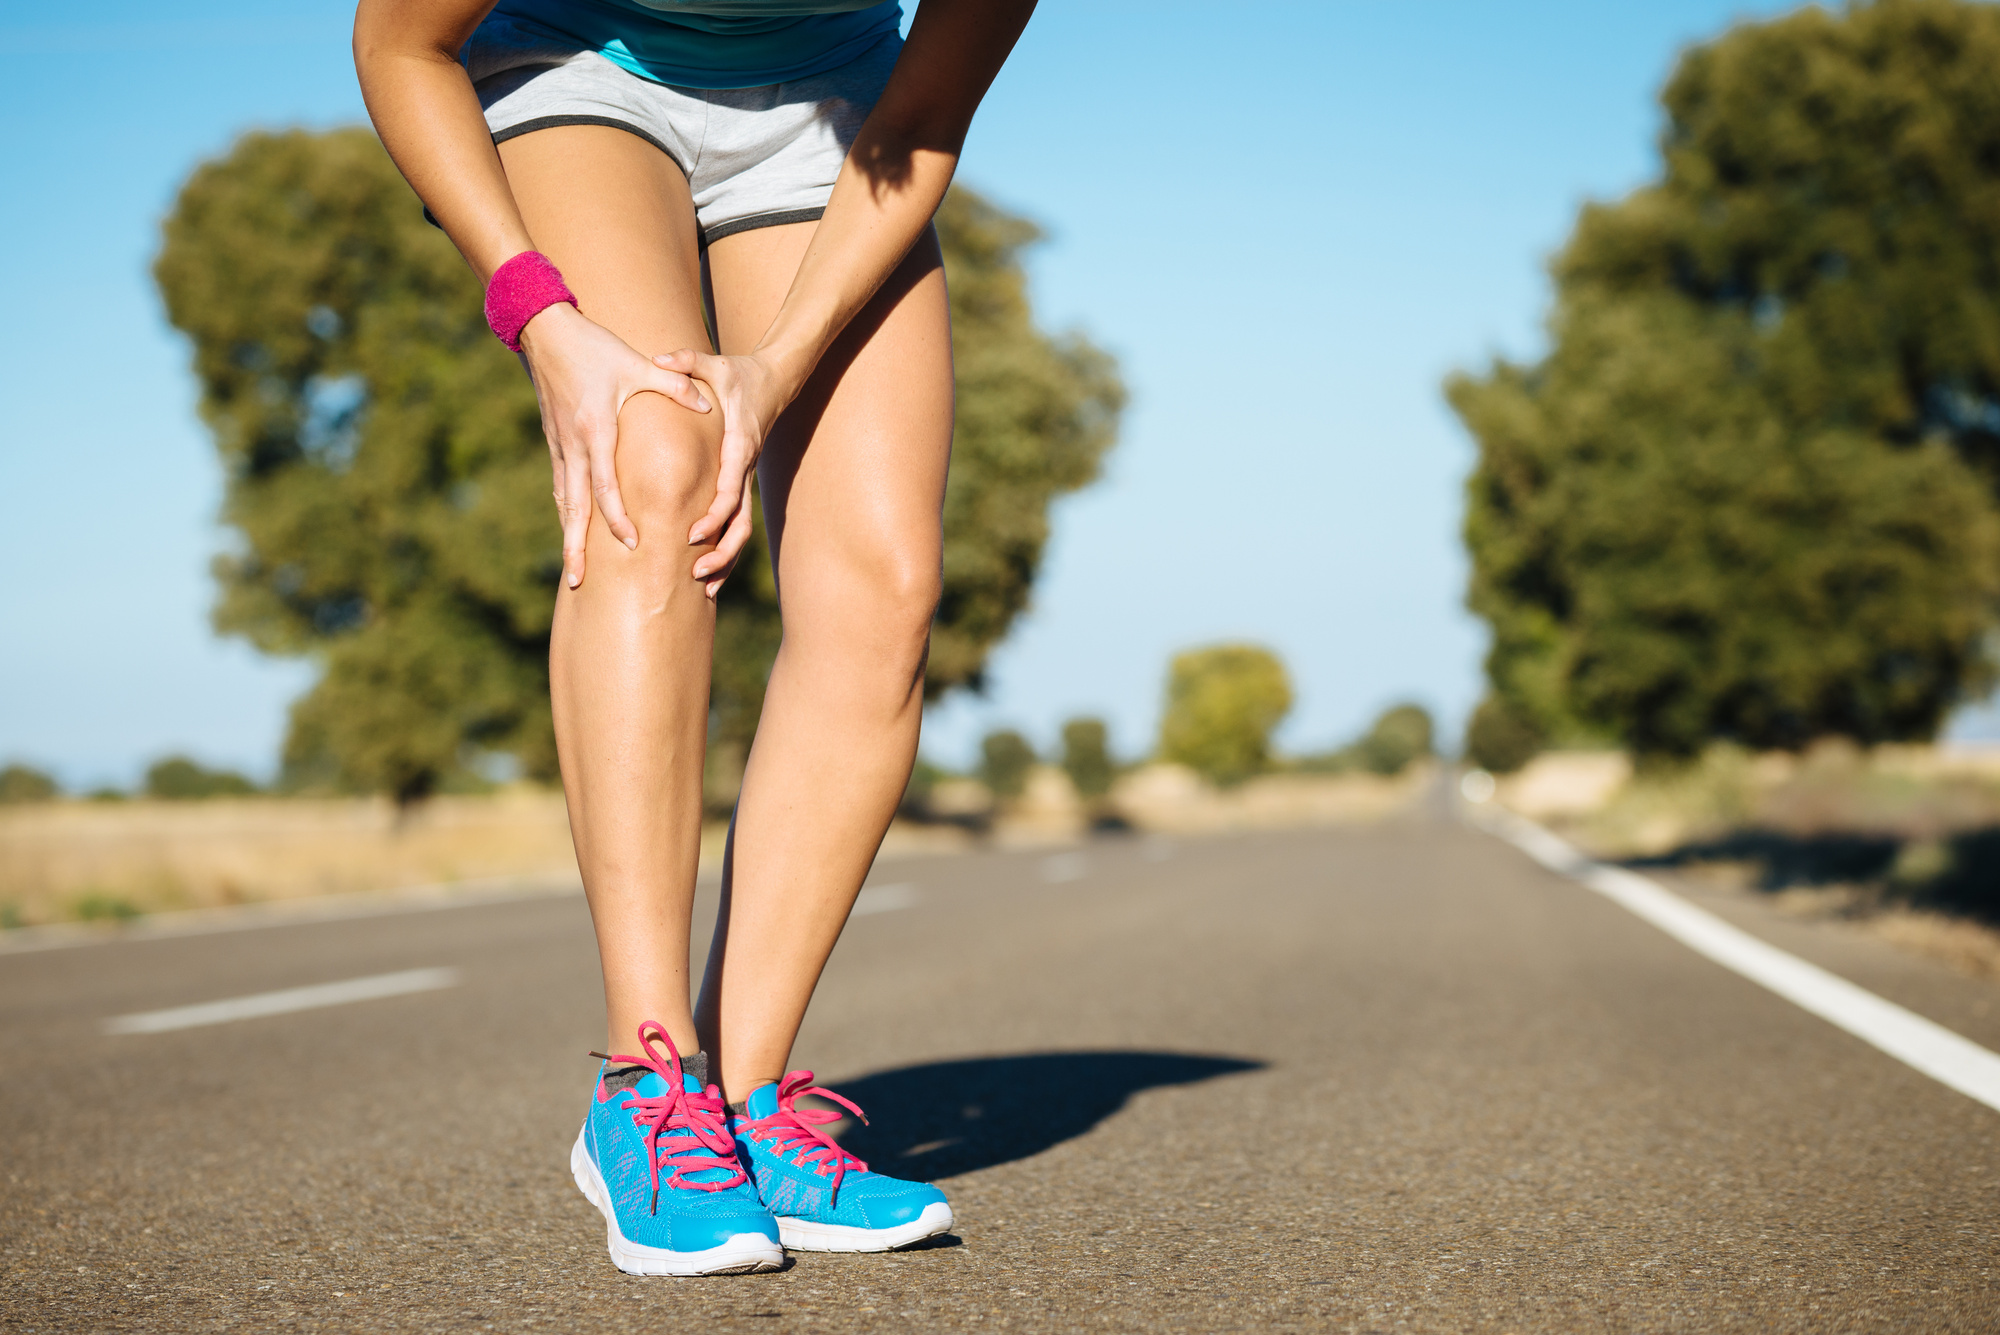 What's Causing Inside Knee Pain After Running?